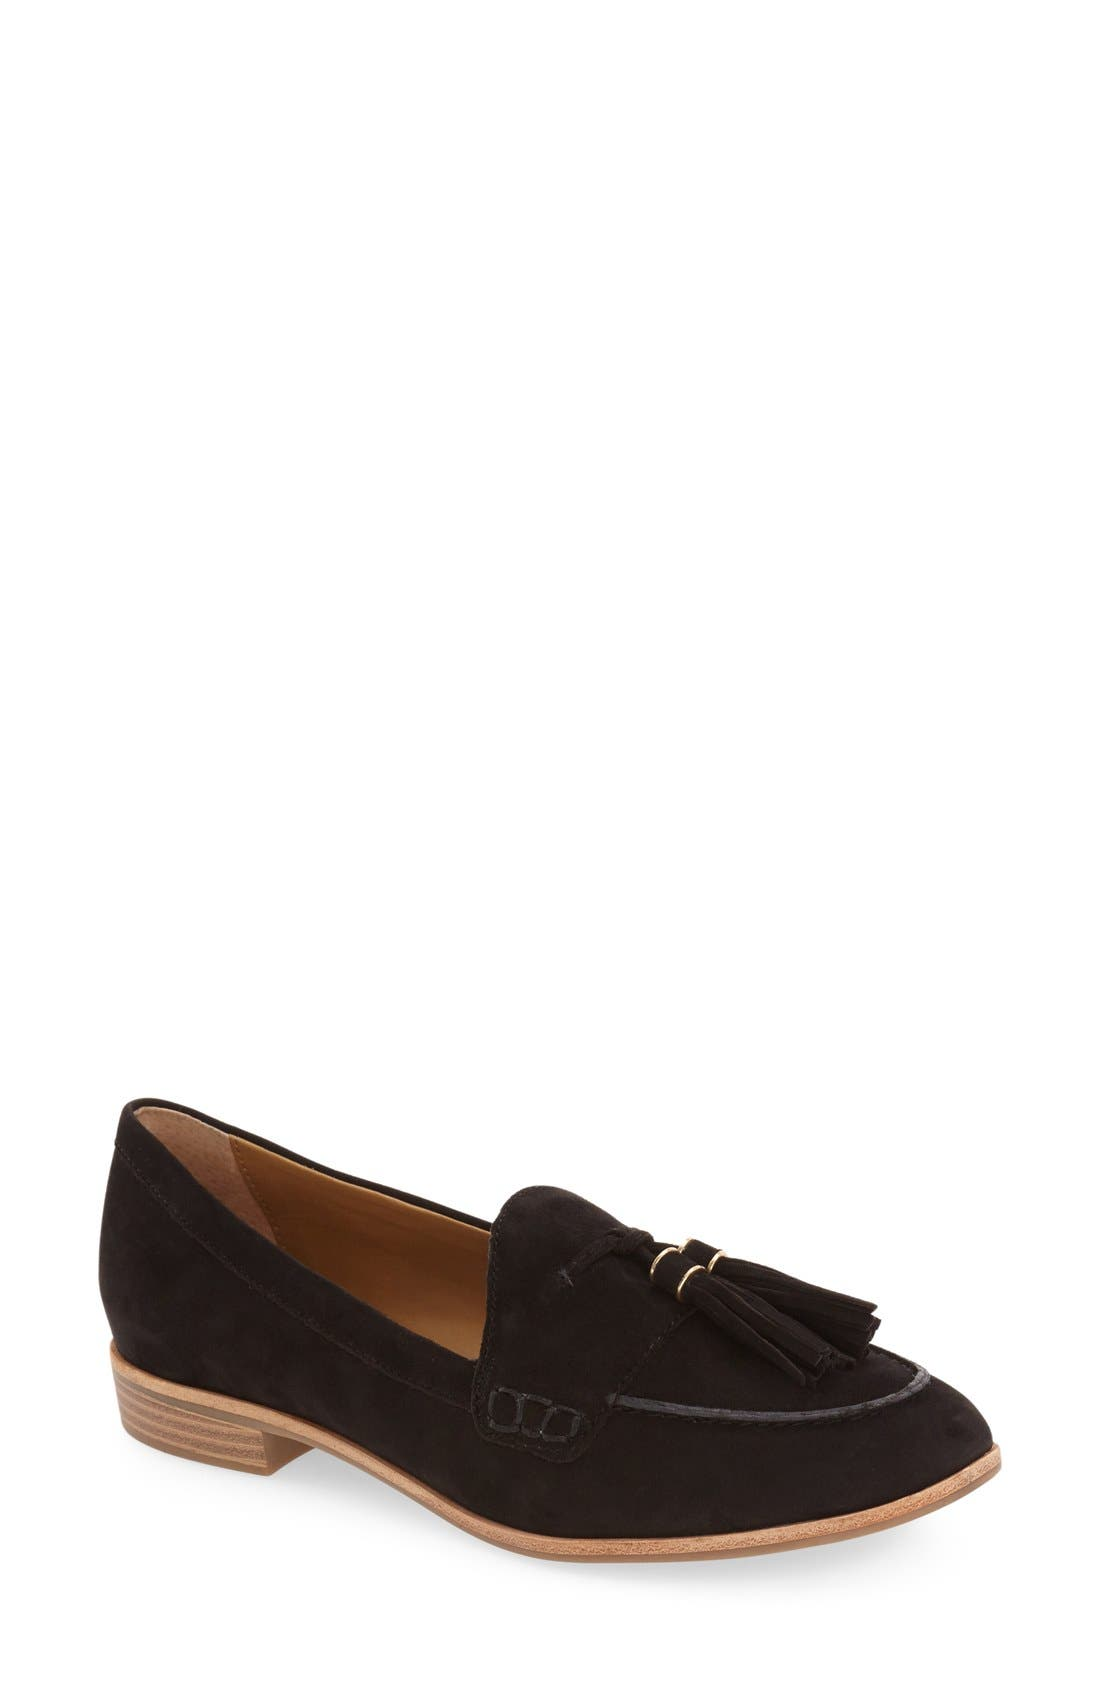 'Estelle' Tassel Loafer,                             Main thumbnail 1, color,                             001